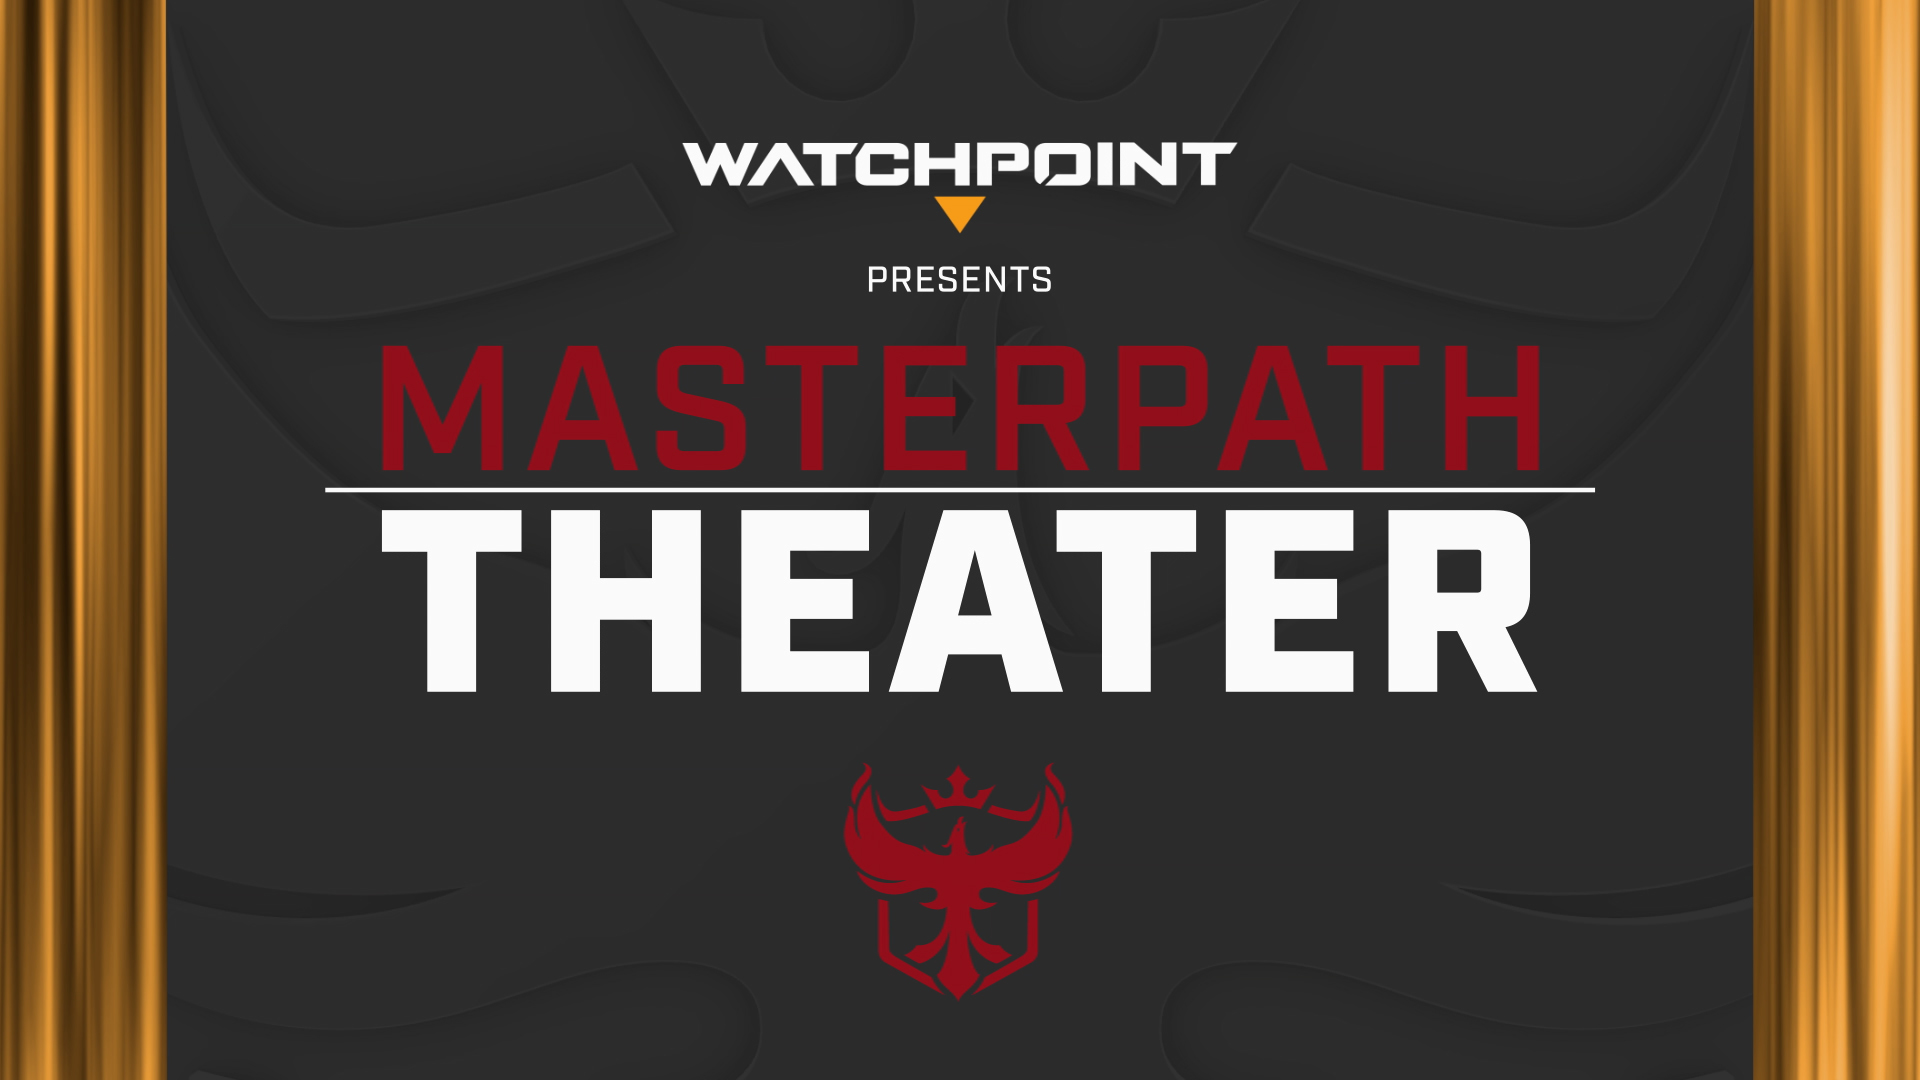 Watchpoint presents MasterPath Theatre: The Atlanta Reign